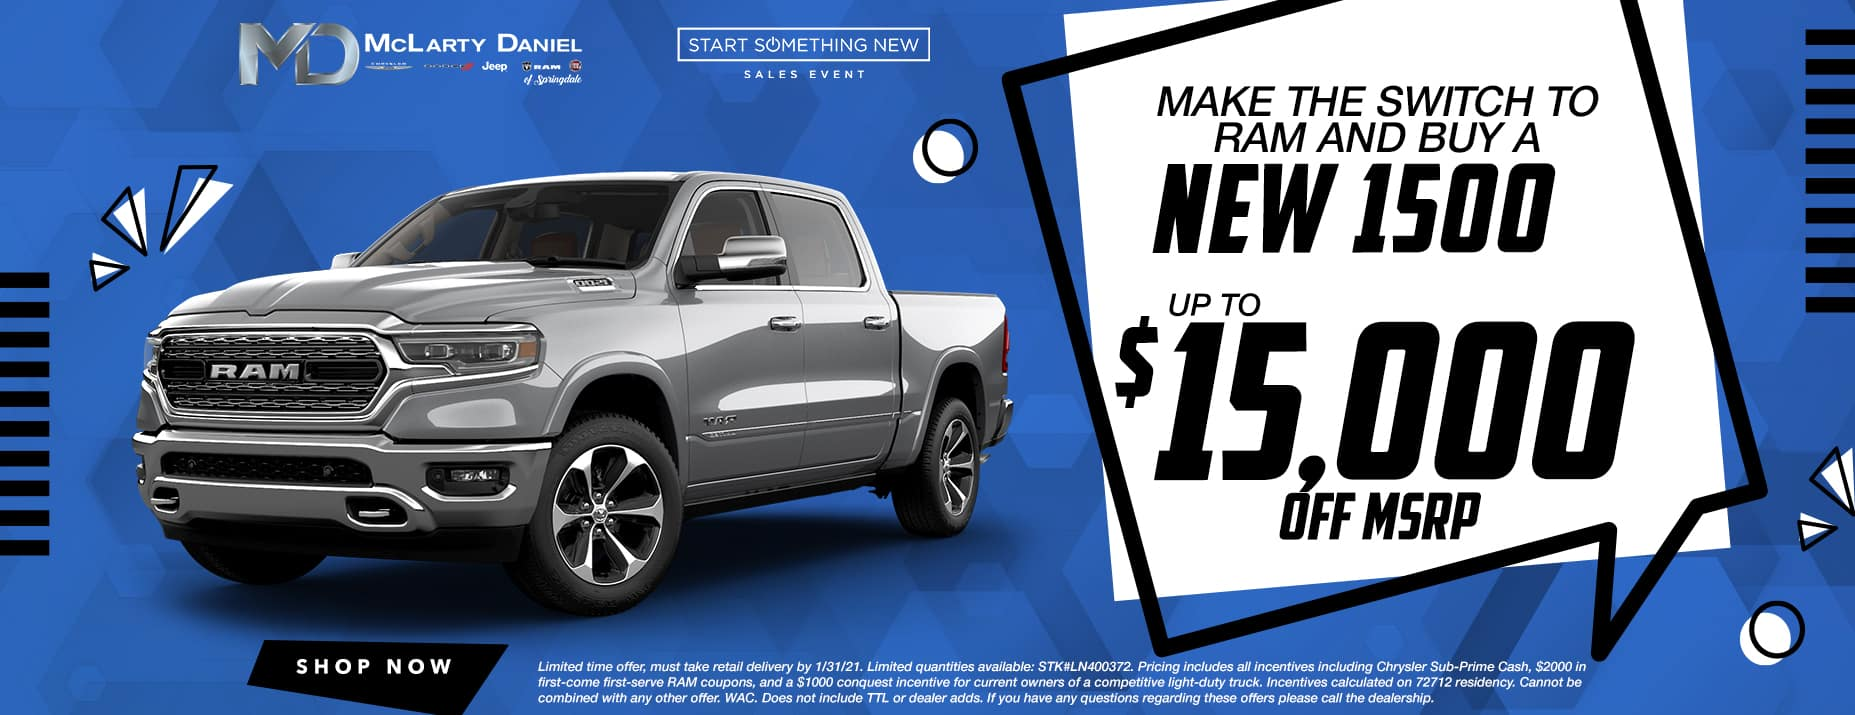 MAKE THE SWITCH TO RAM AND BUY A NEW 1500 WITH UP TO $15,000 OFF!